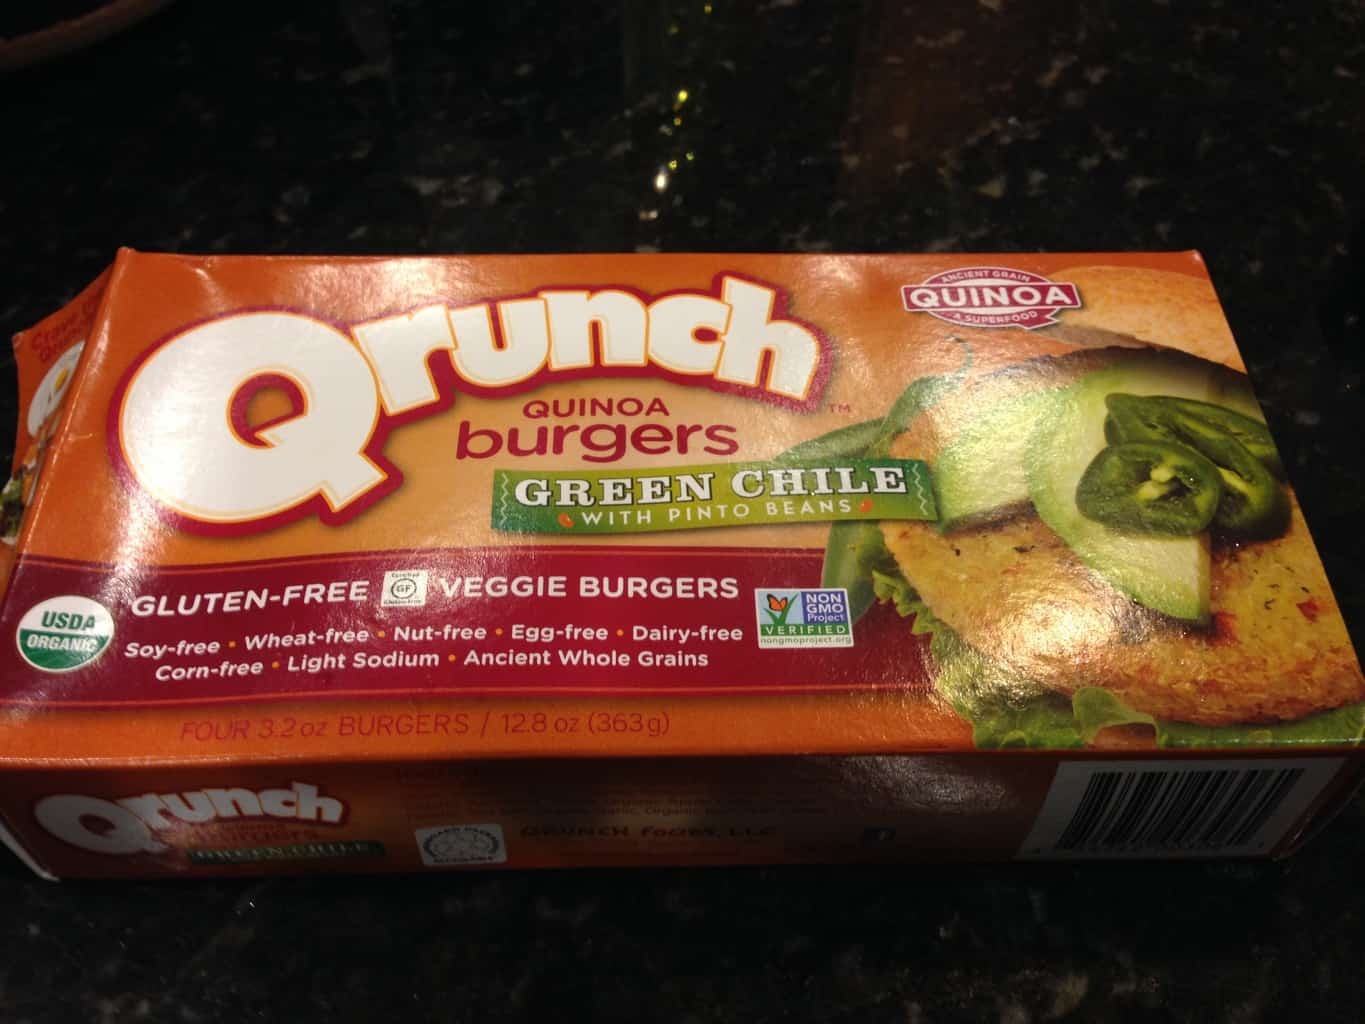 Gluten-Free Product Review: Qrunch Quinoa Burgers